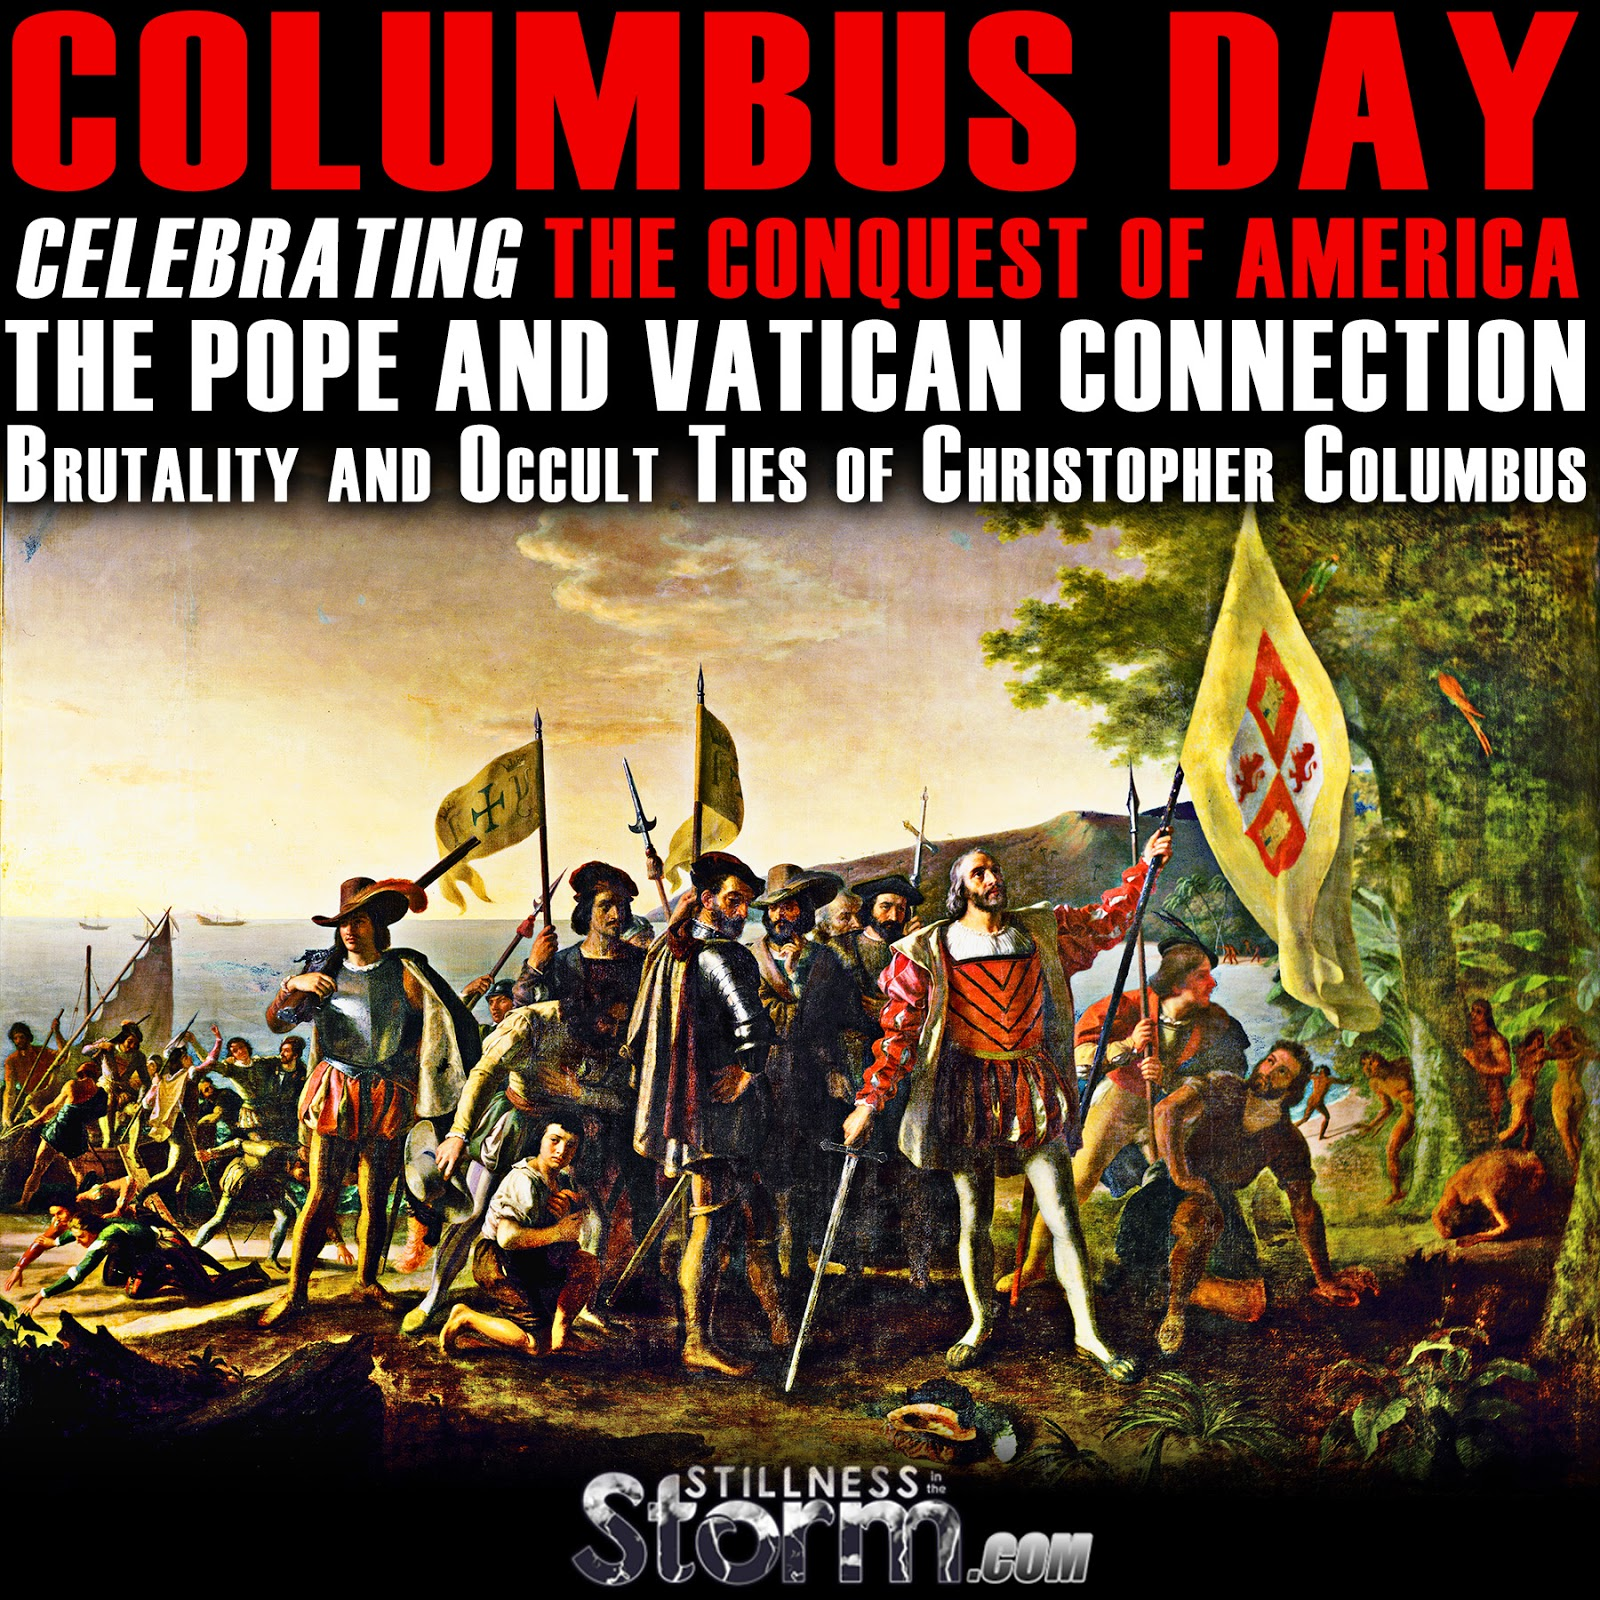 Columbus Day - Celebrating the Conquest of America The Pope and Vatican Connection, Brutality and Occult Ties of Christopher Columbus